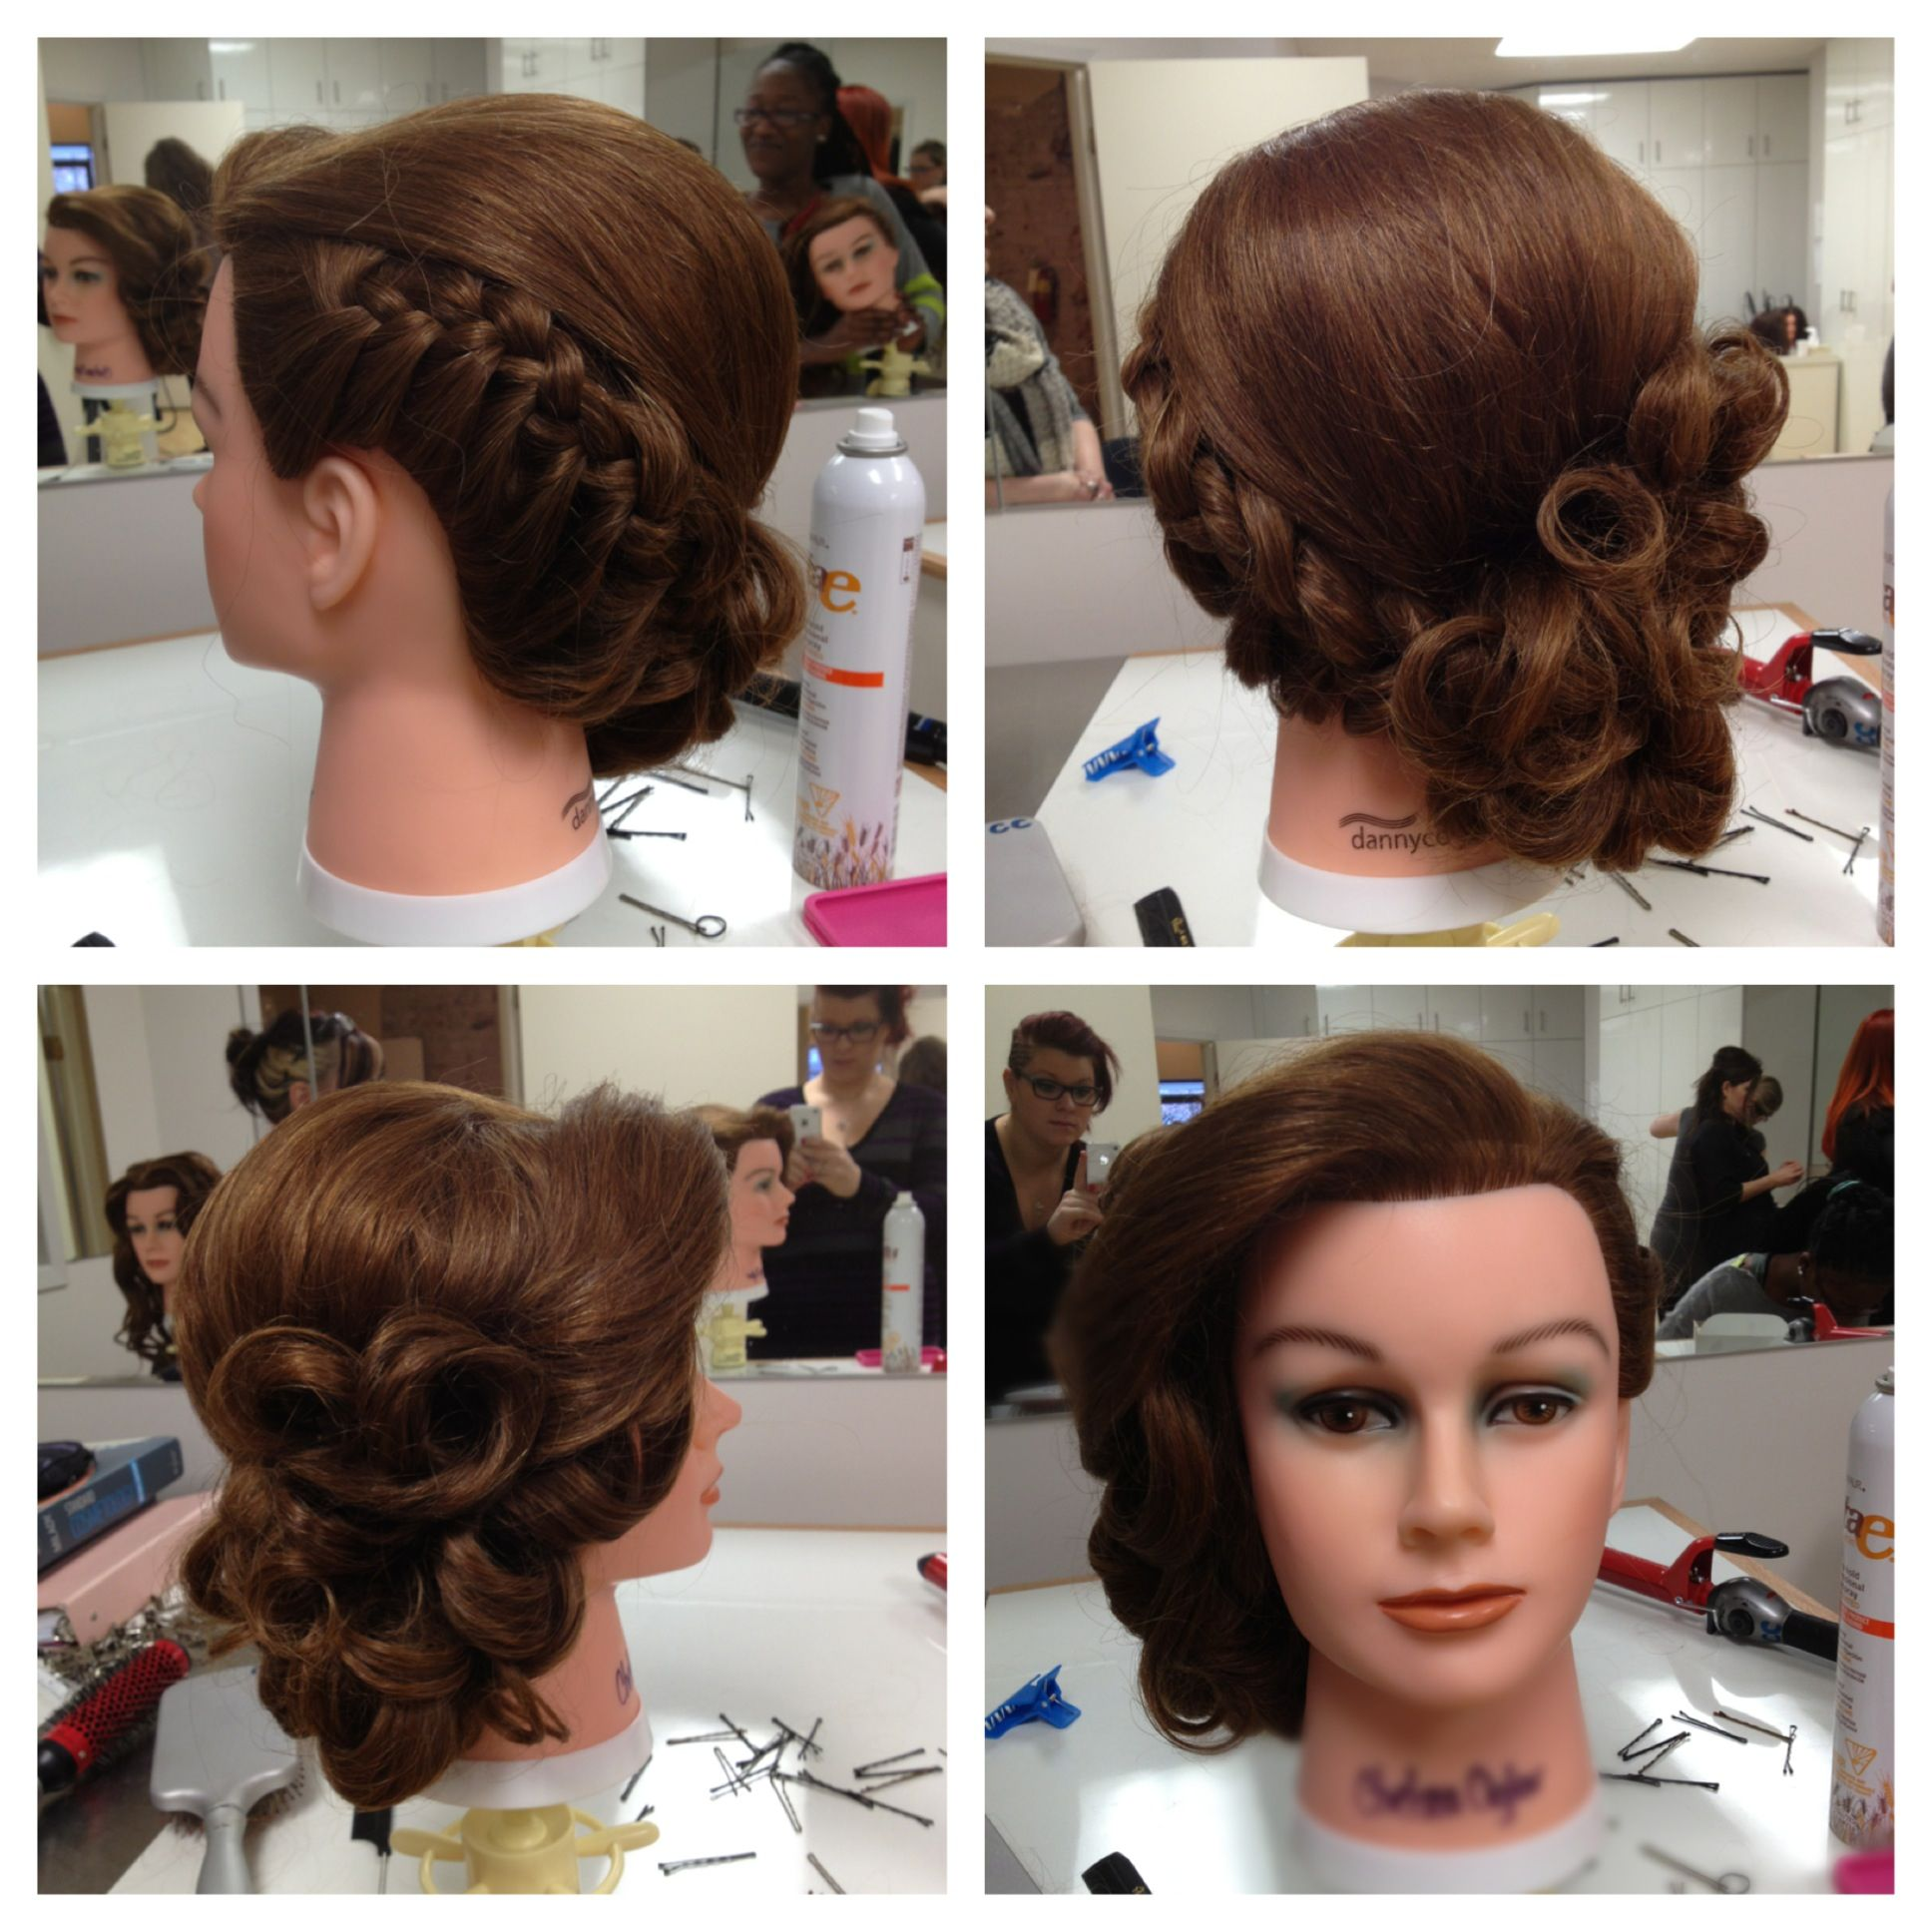 Pin By Maritza Lazcano On Hair Pin Curl Hair Pin Curl Updo Curled Updo